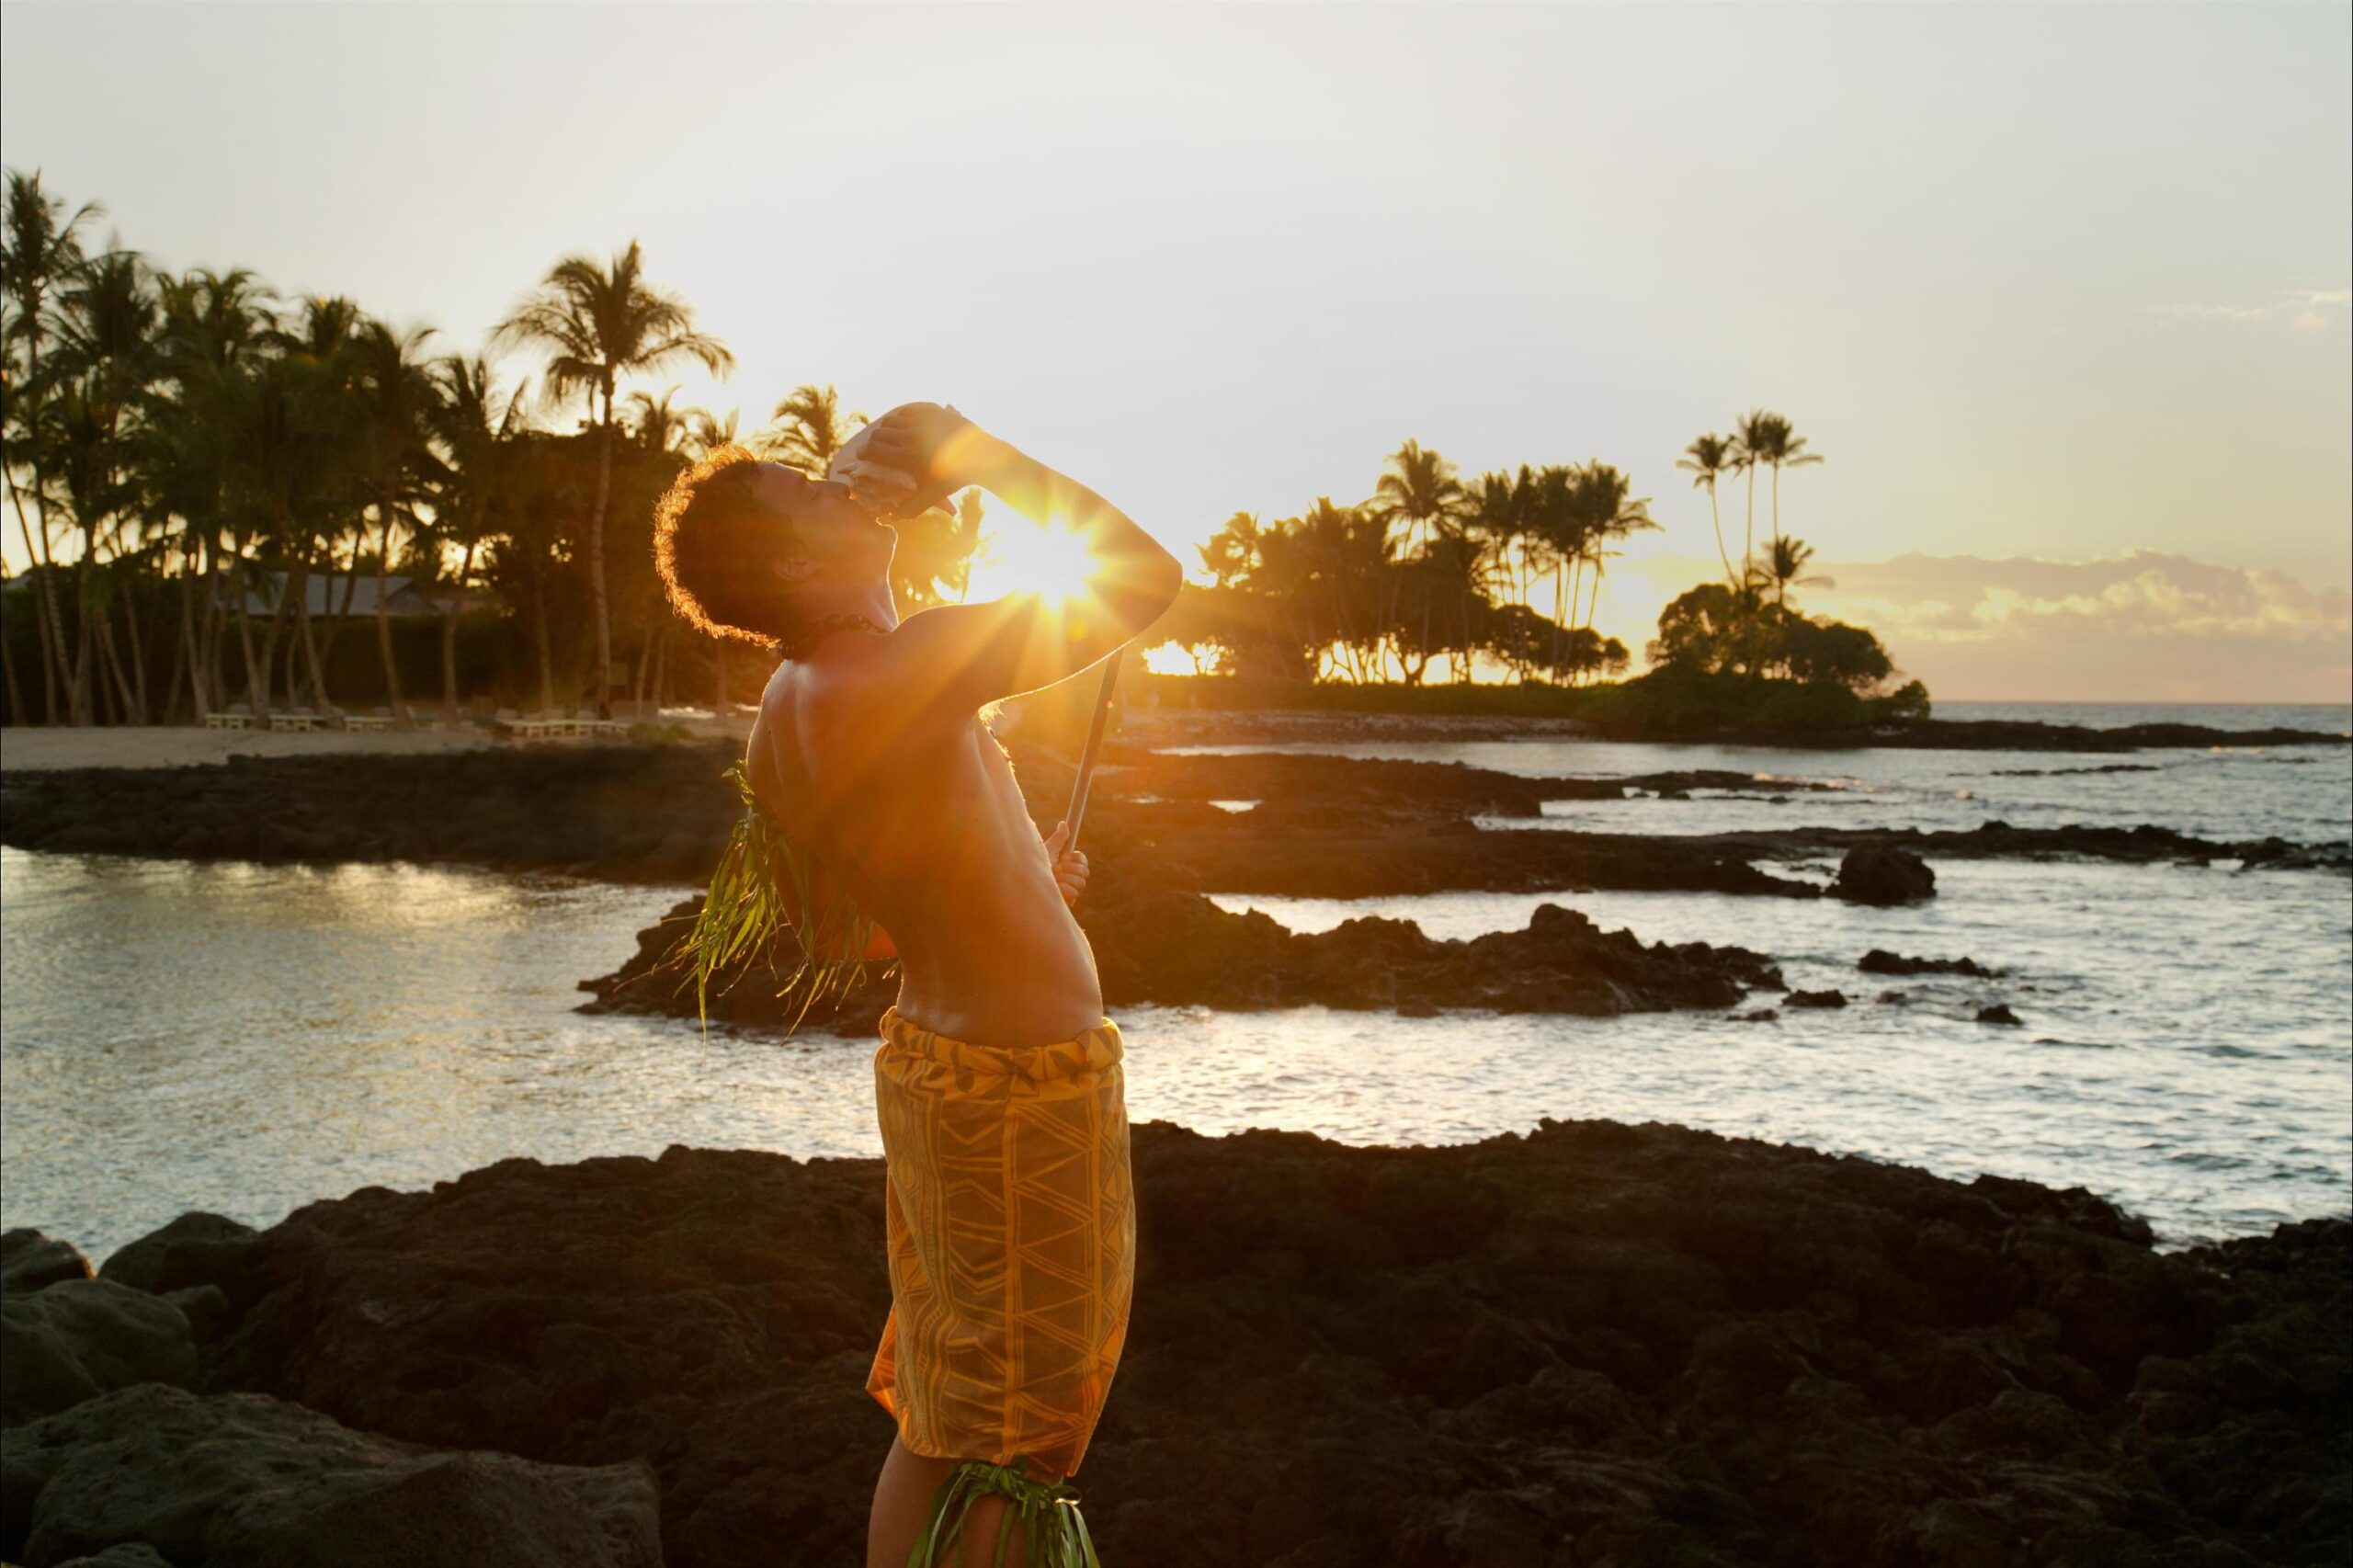 Fairmont Orchid review: conch blowing ceremony at sunset at fairmont orchid